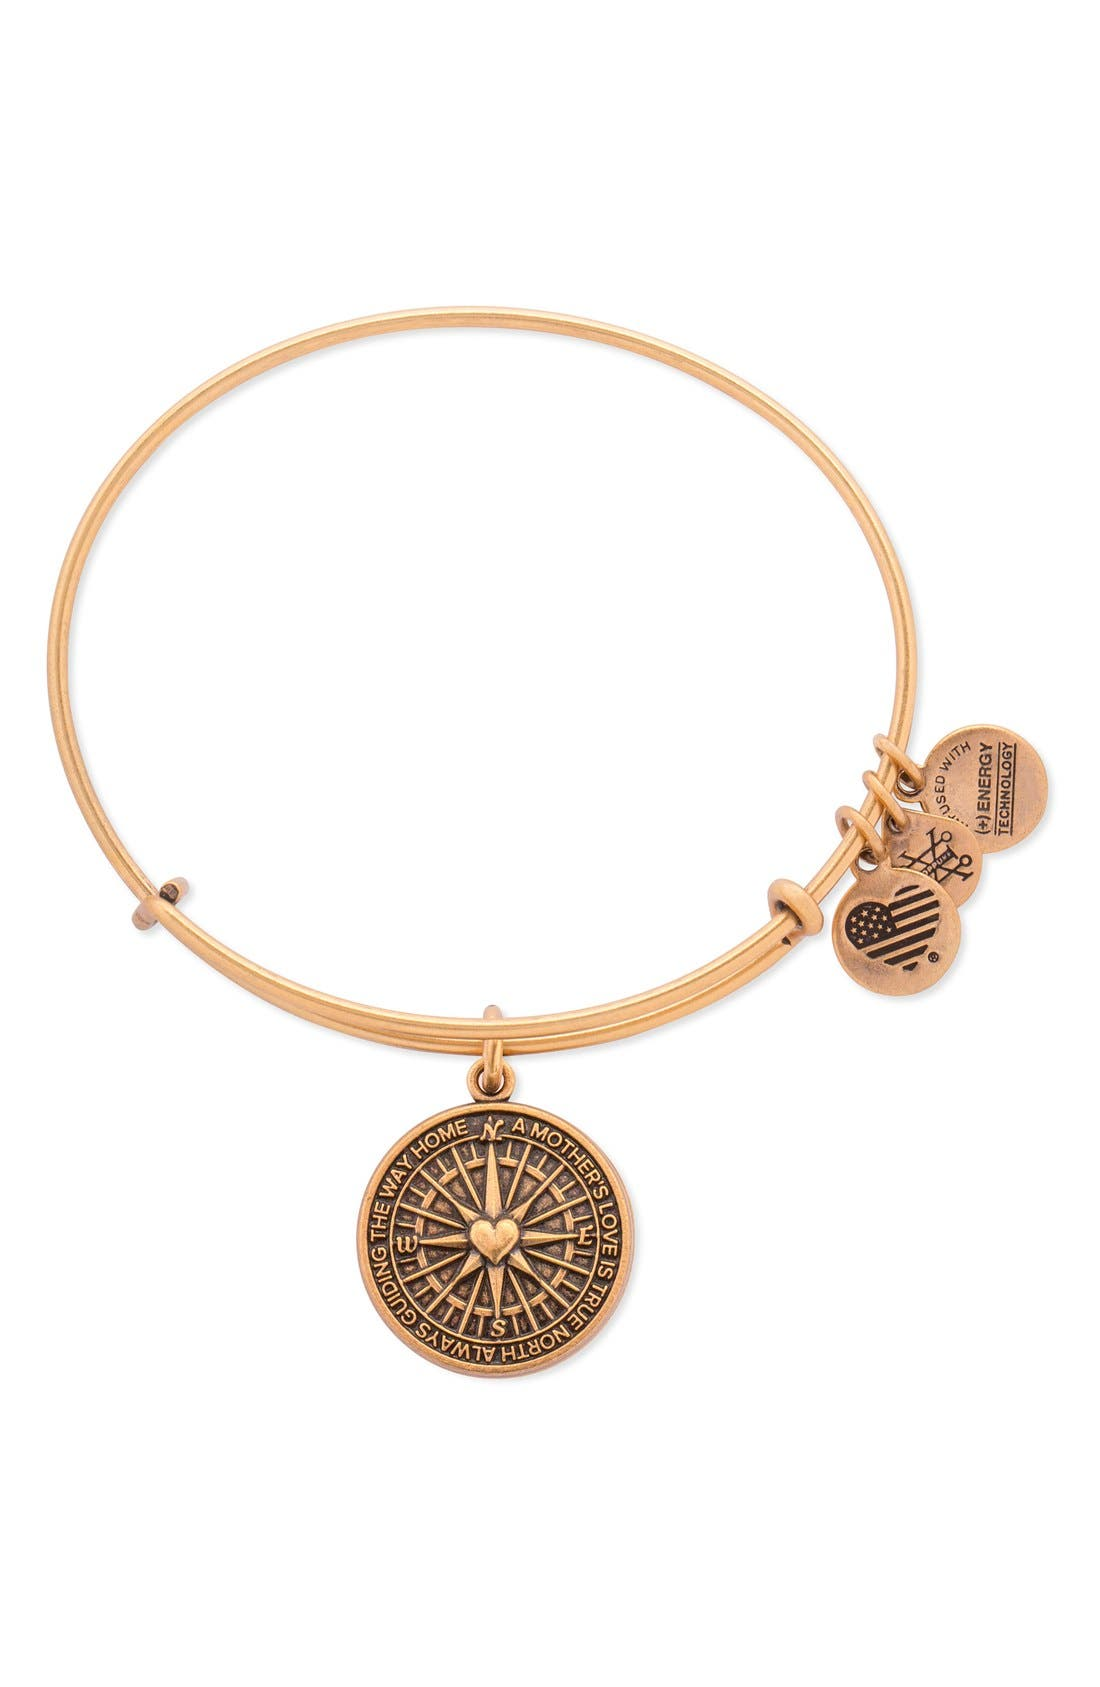 Main Image - Alex and Ani 'True Direction' Adjustable Wire Bangle